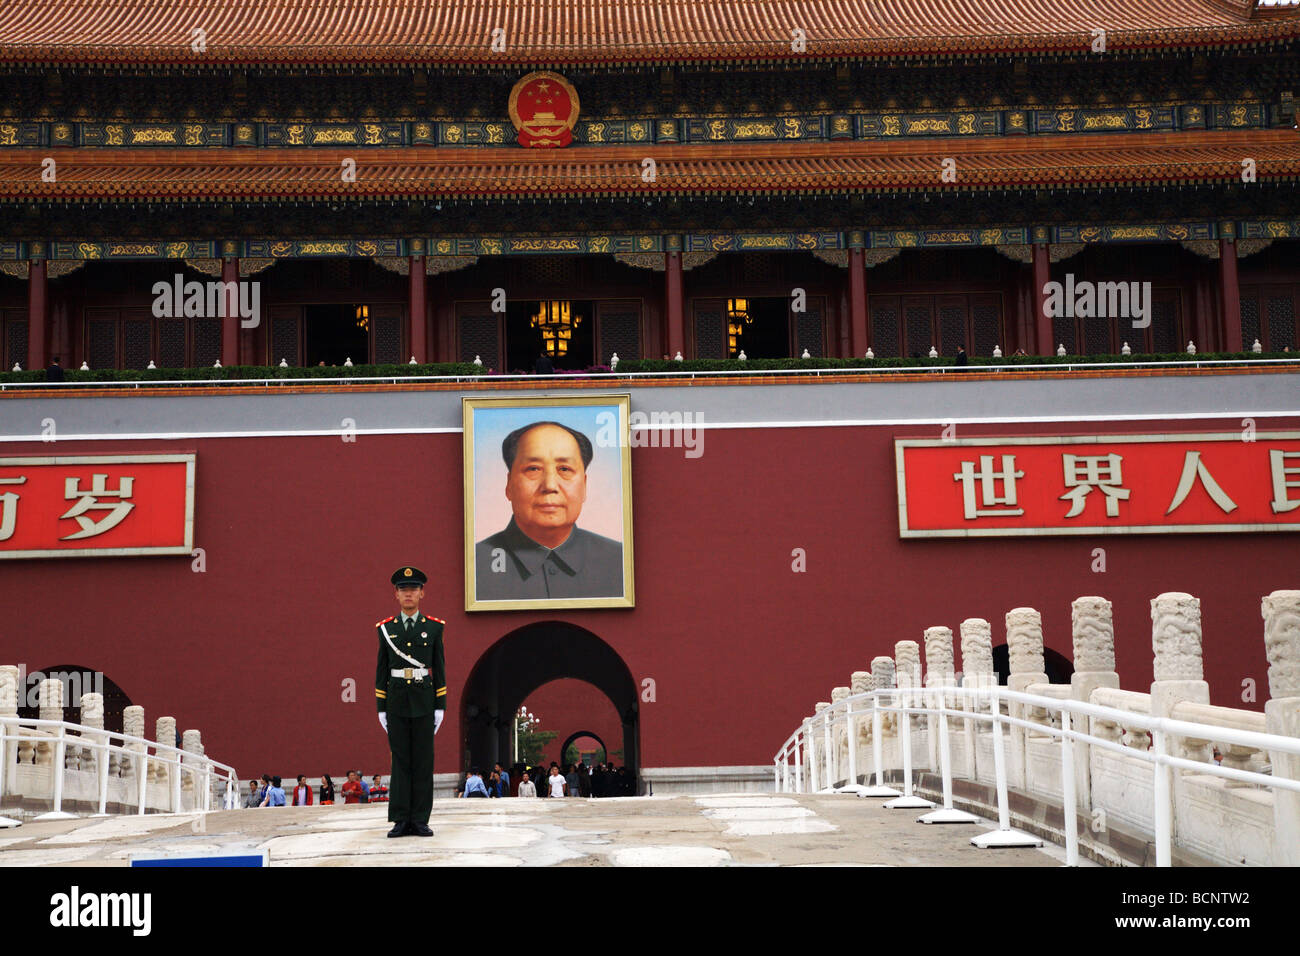 A guard standing before the Tian'anmen Rostrum on the Tian'anmen Square, Beijing, China - Stock Image